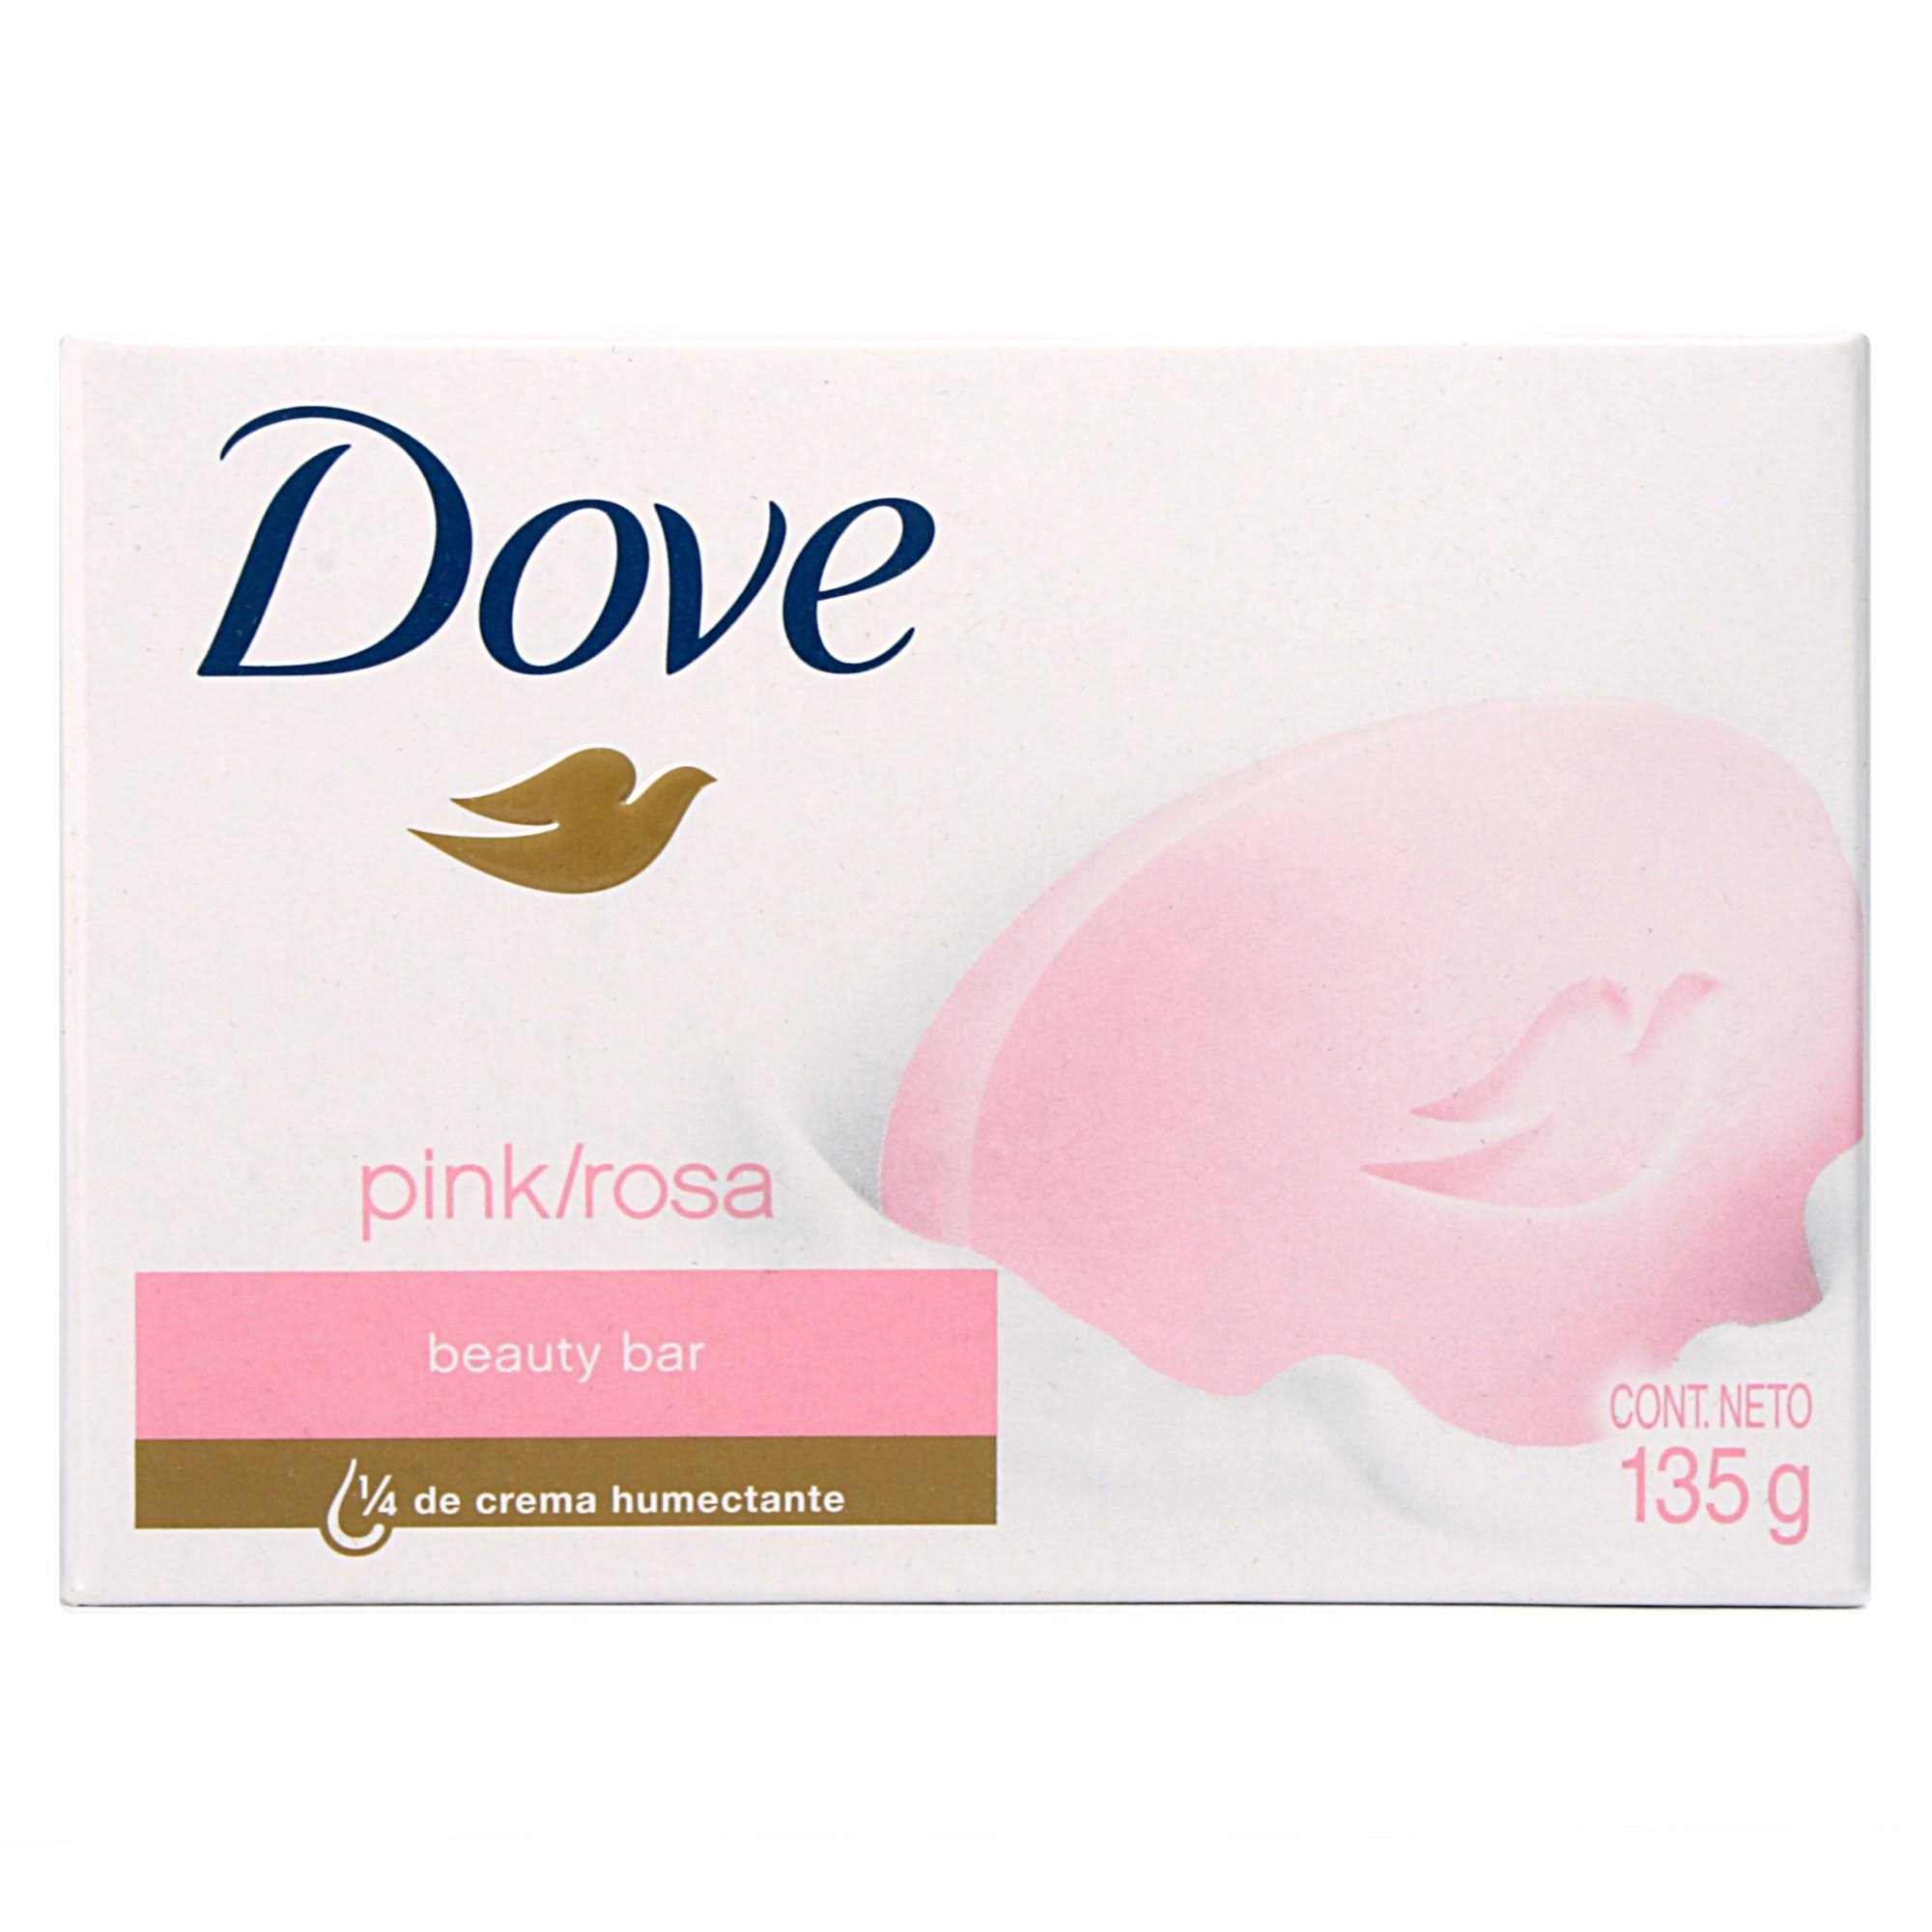 Dove Pink Rosa Beauty Bar - 135g